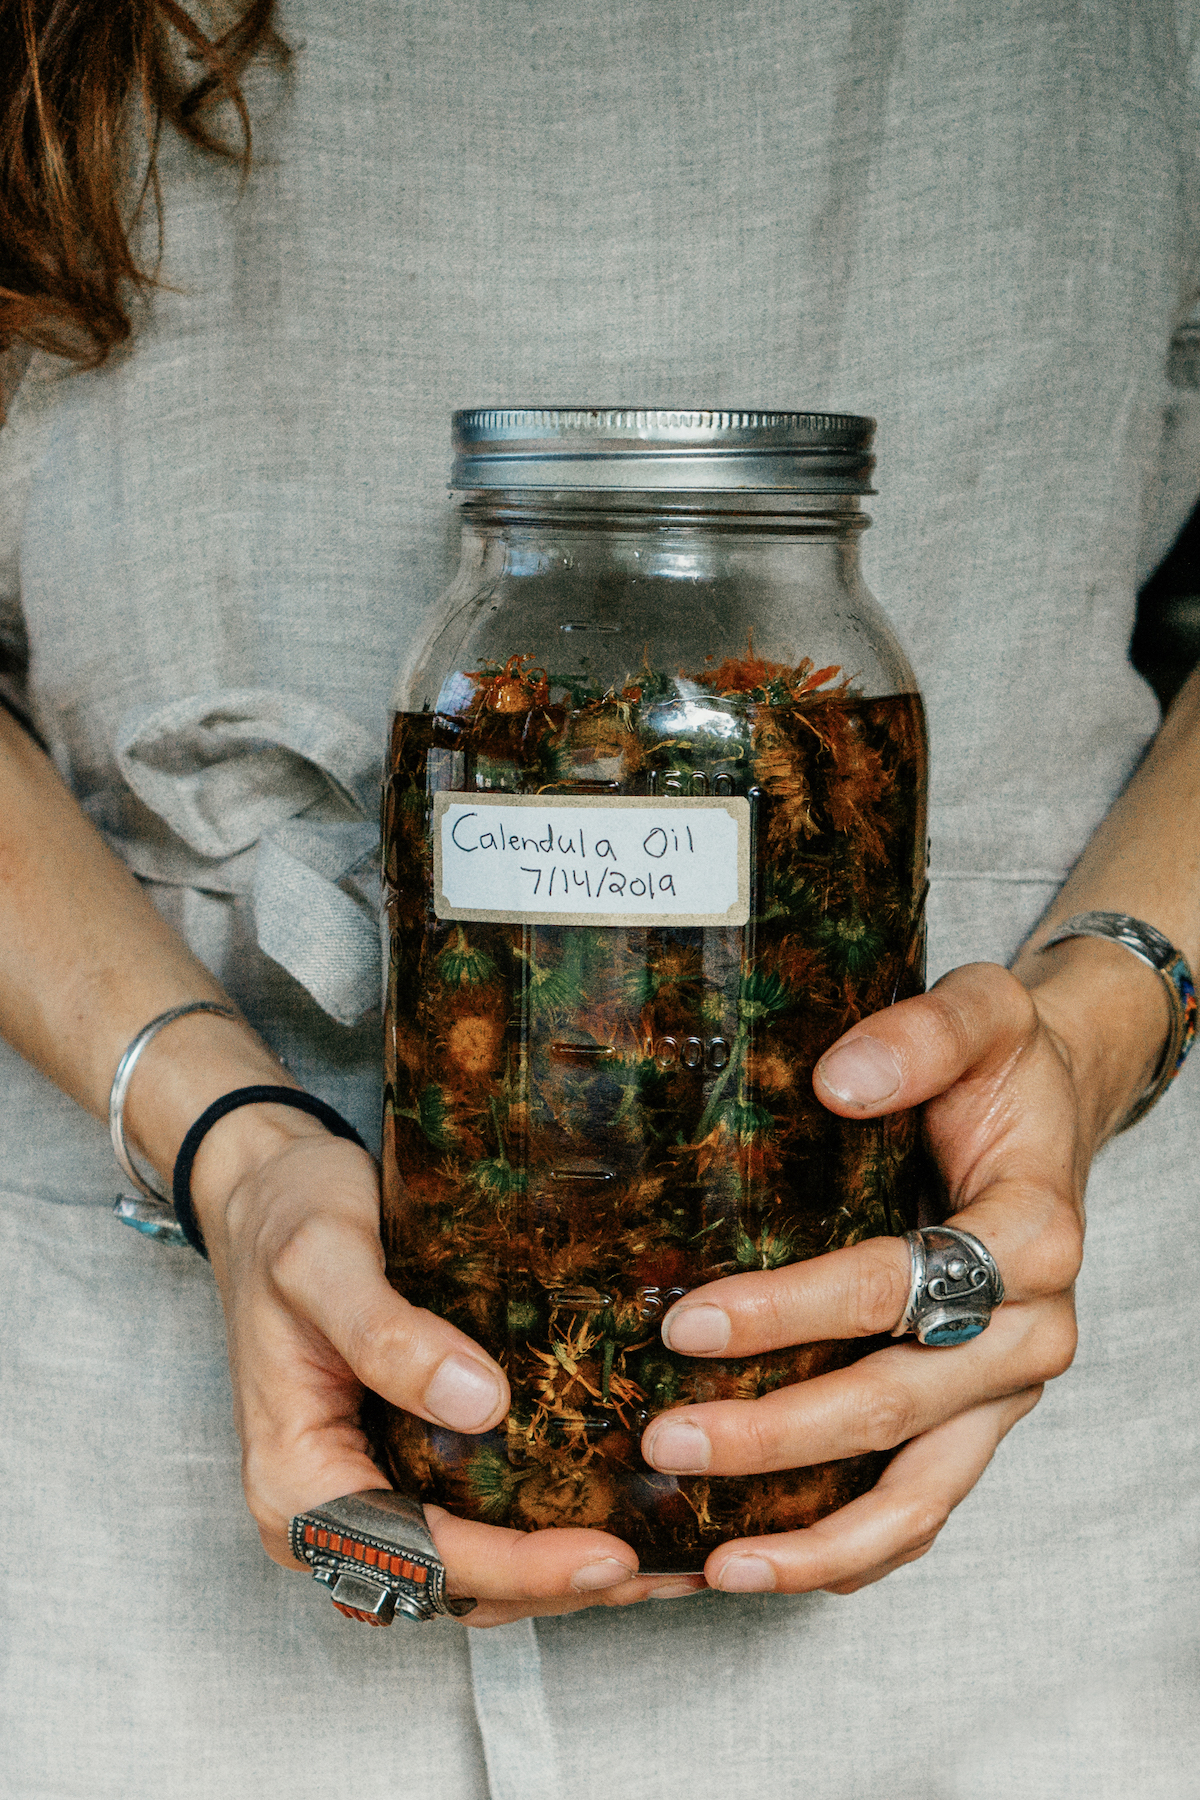 Introductory Herbal Course - making herbal oils